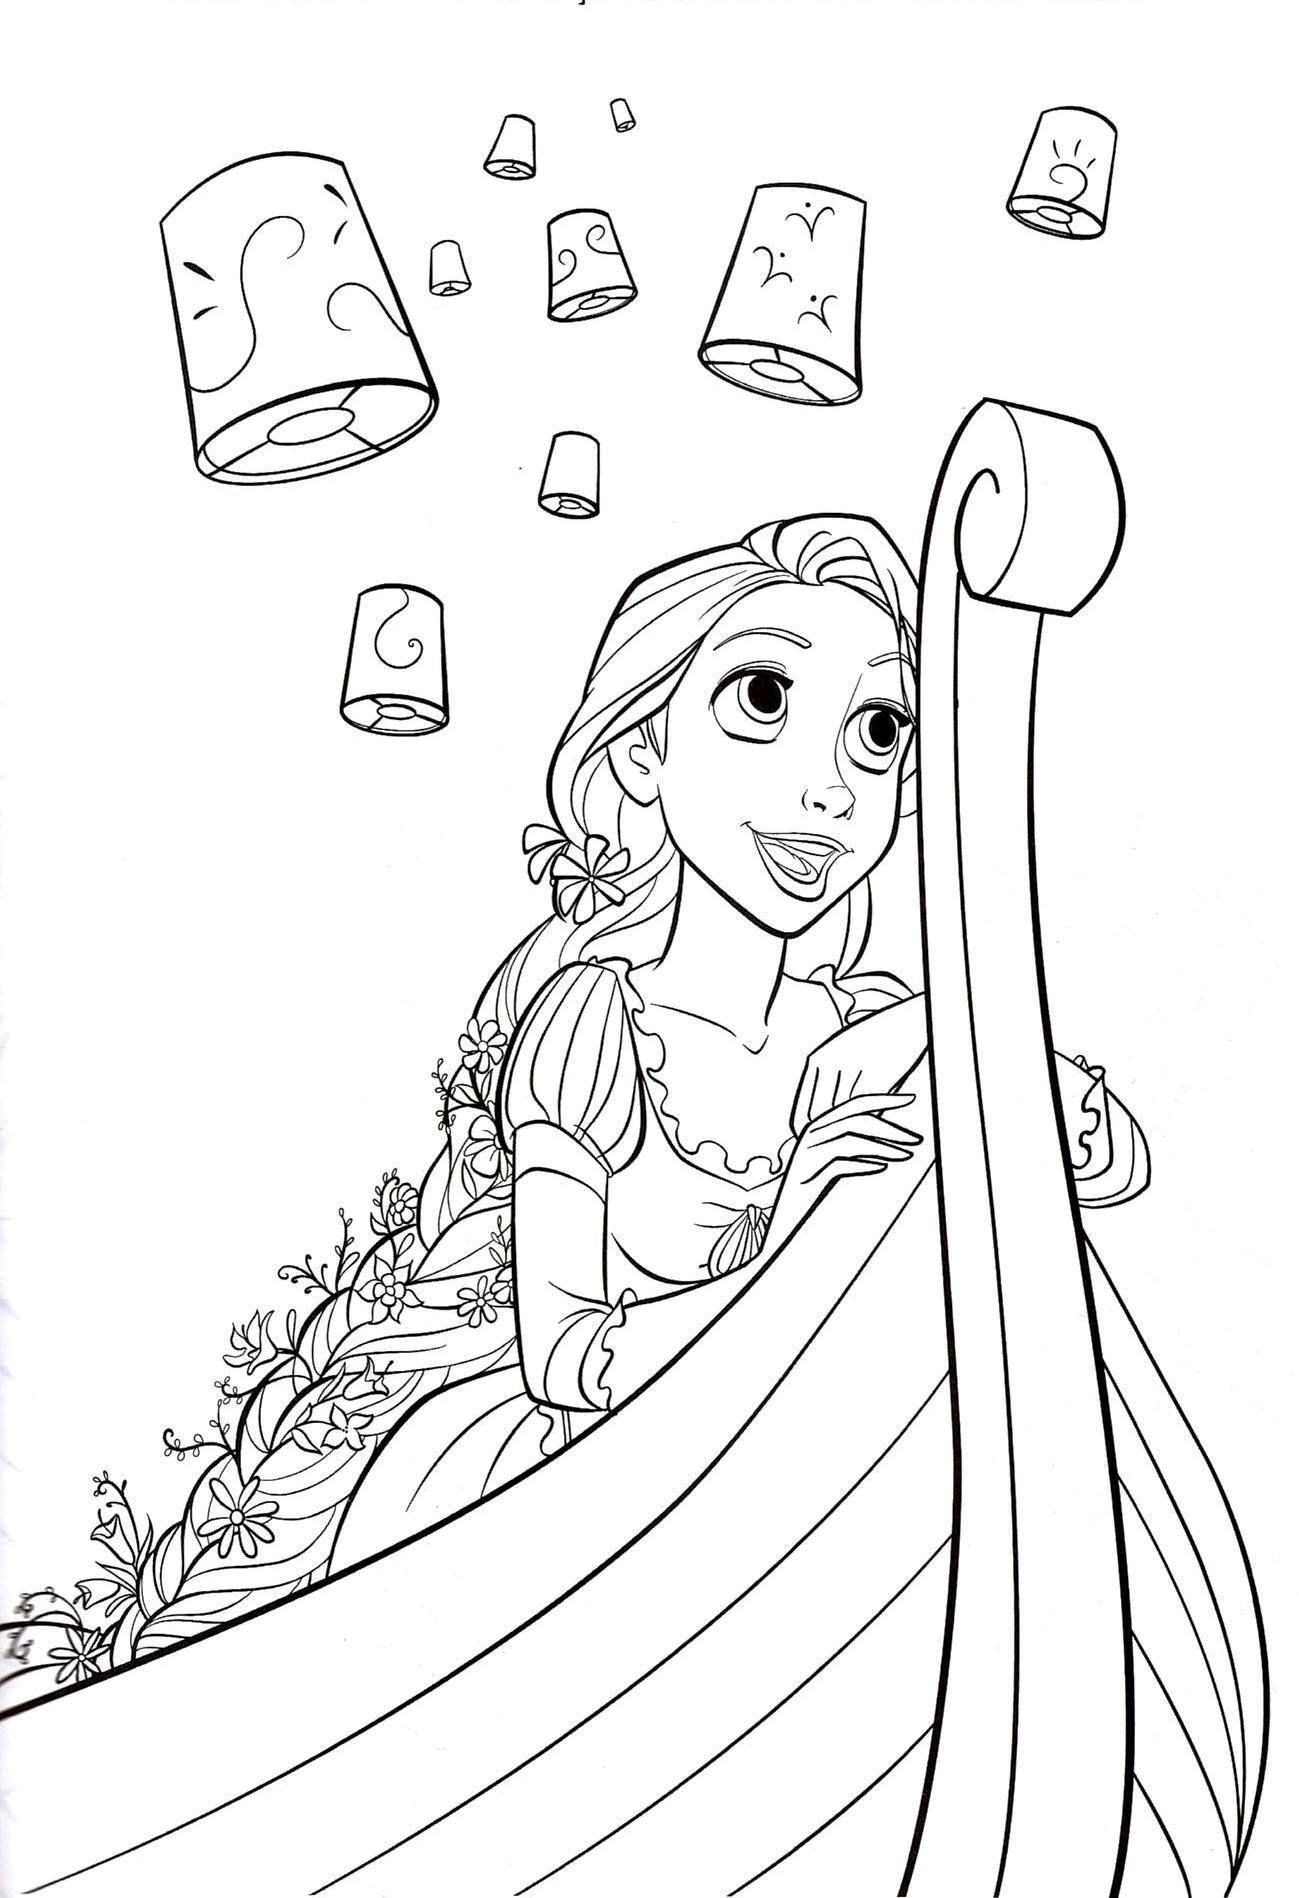 photograph regarding Rapunzel Printable Coloring Pages known as Disney Rapunzel Coloring Internet pages No cost Printable Disney